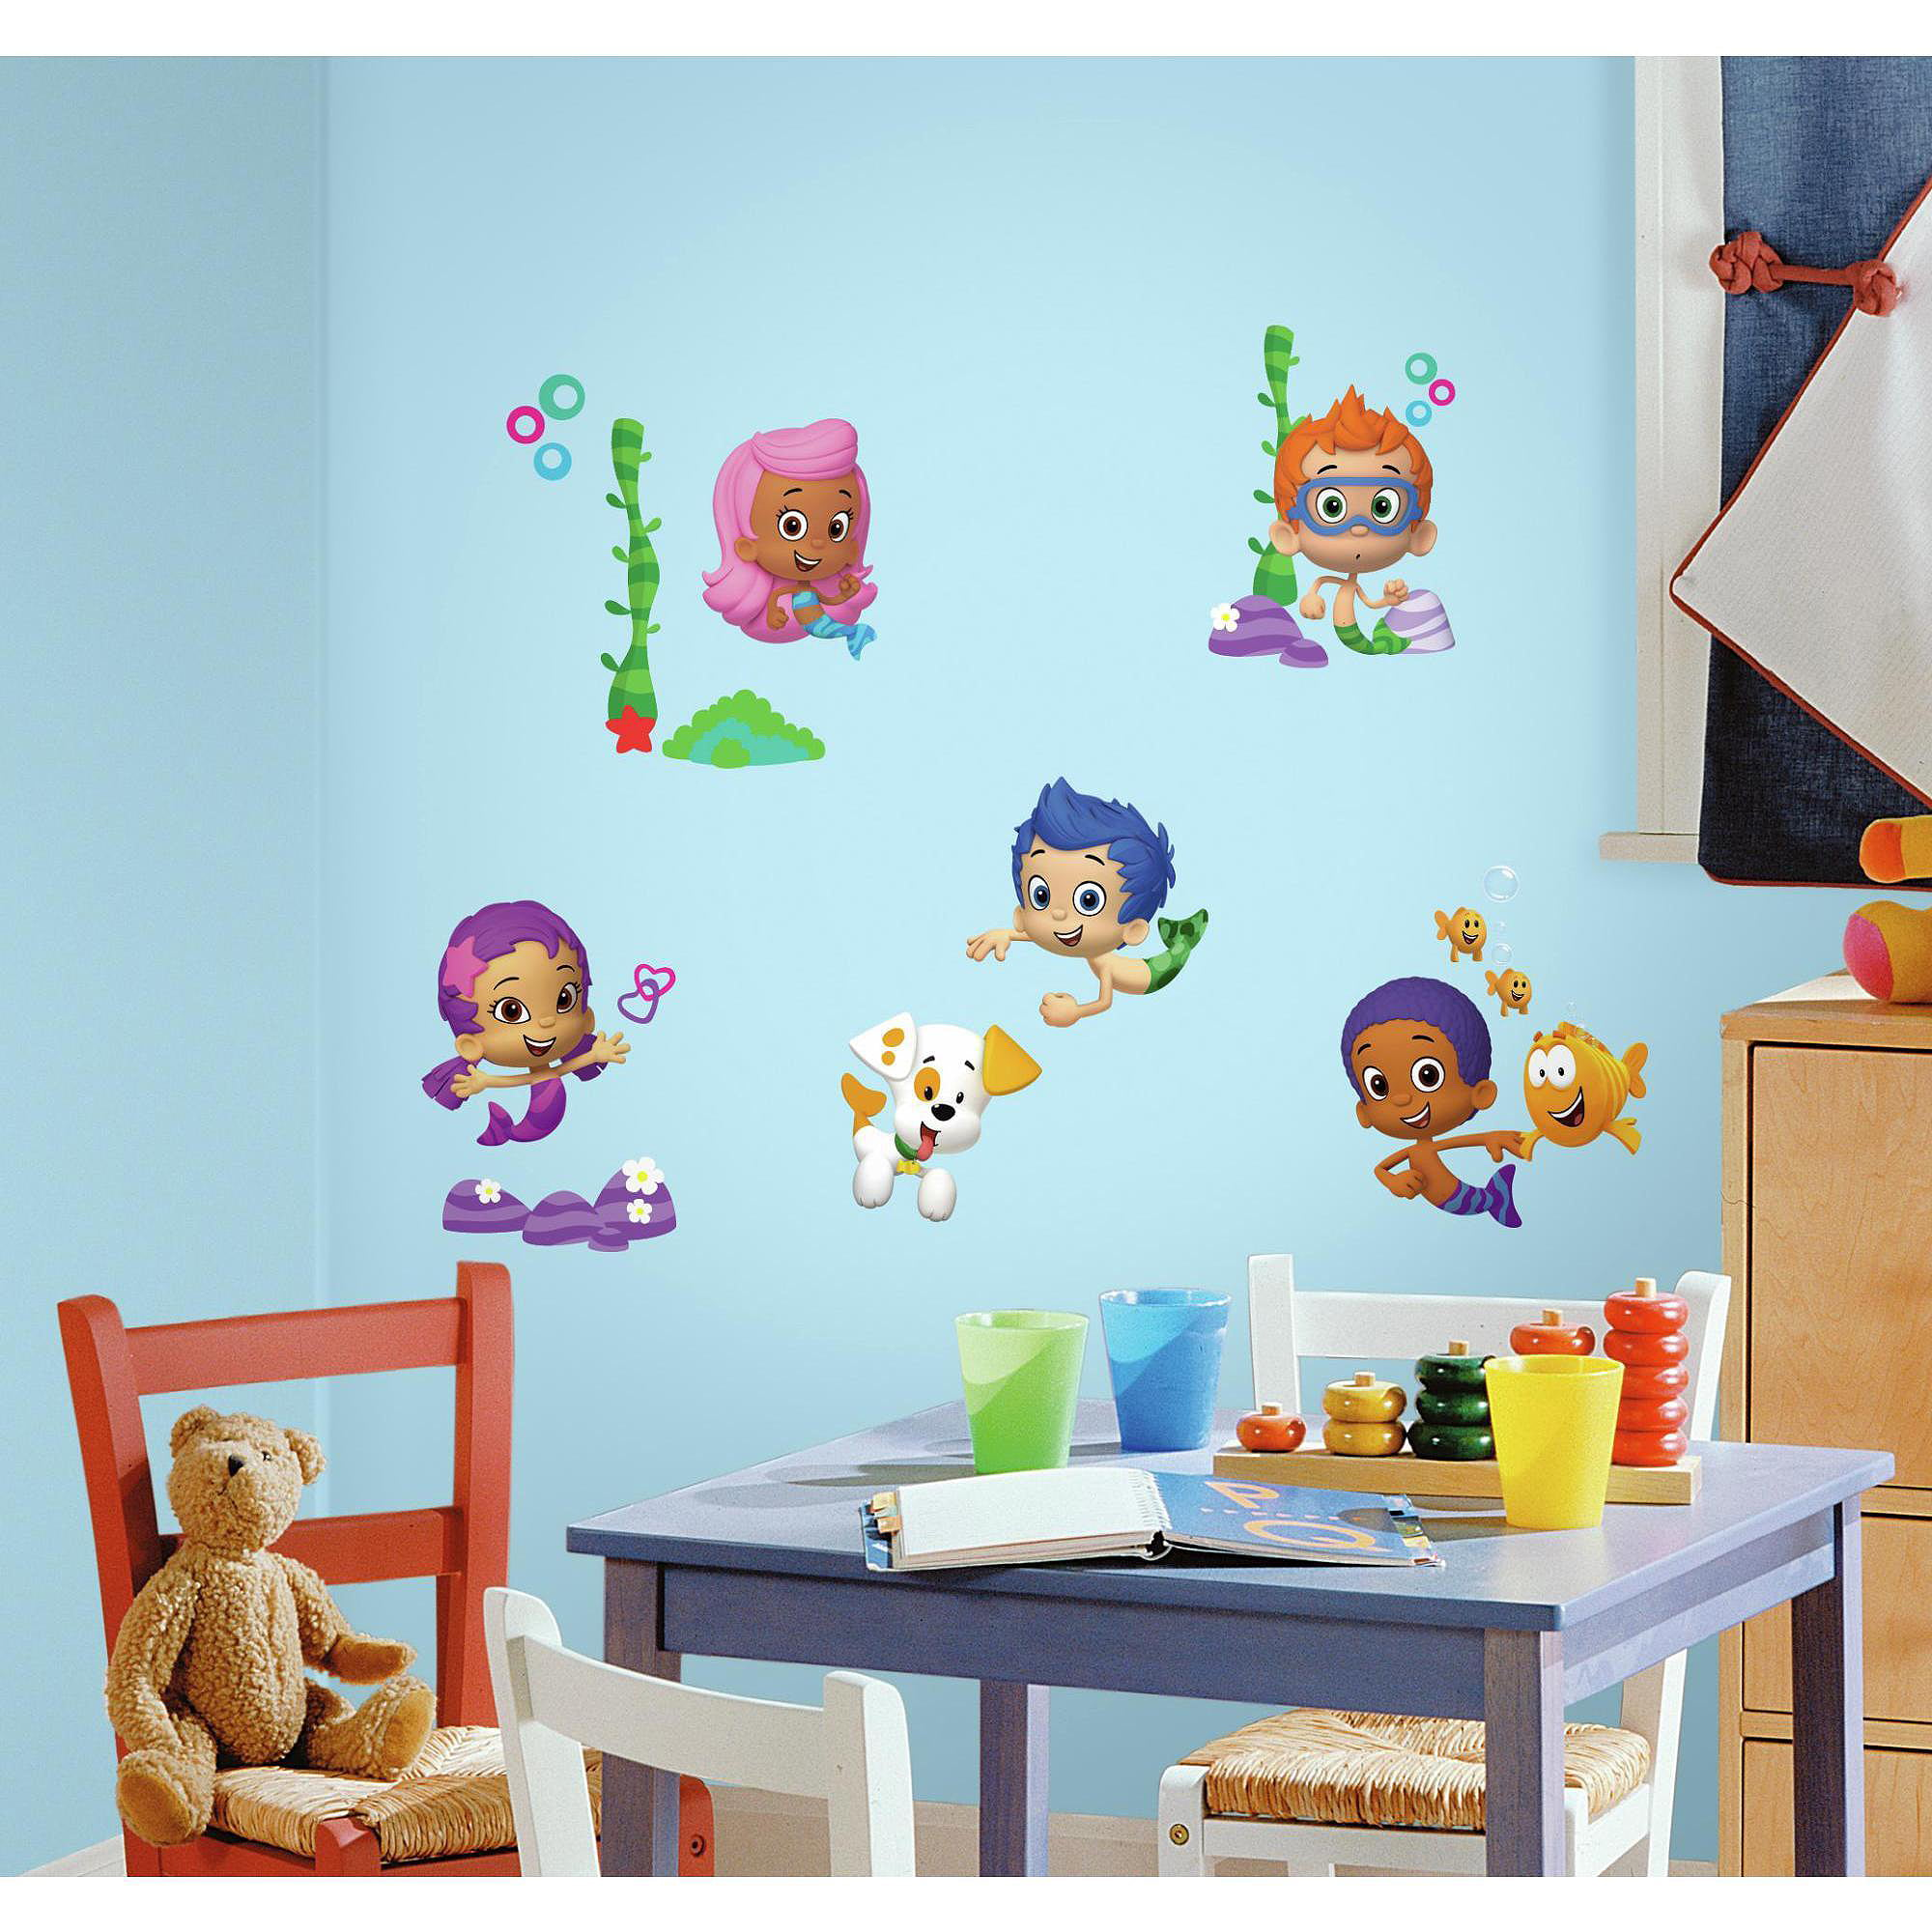 Bubble Guppies Wall Decal Decorations - Walmart.com